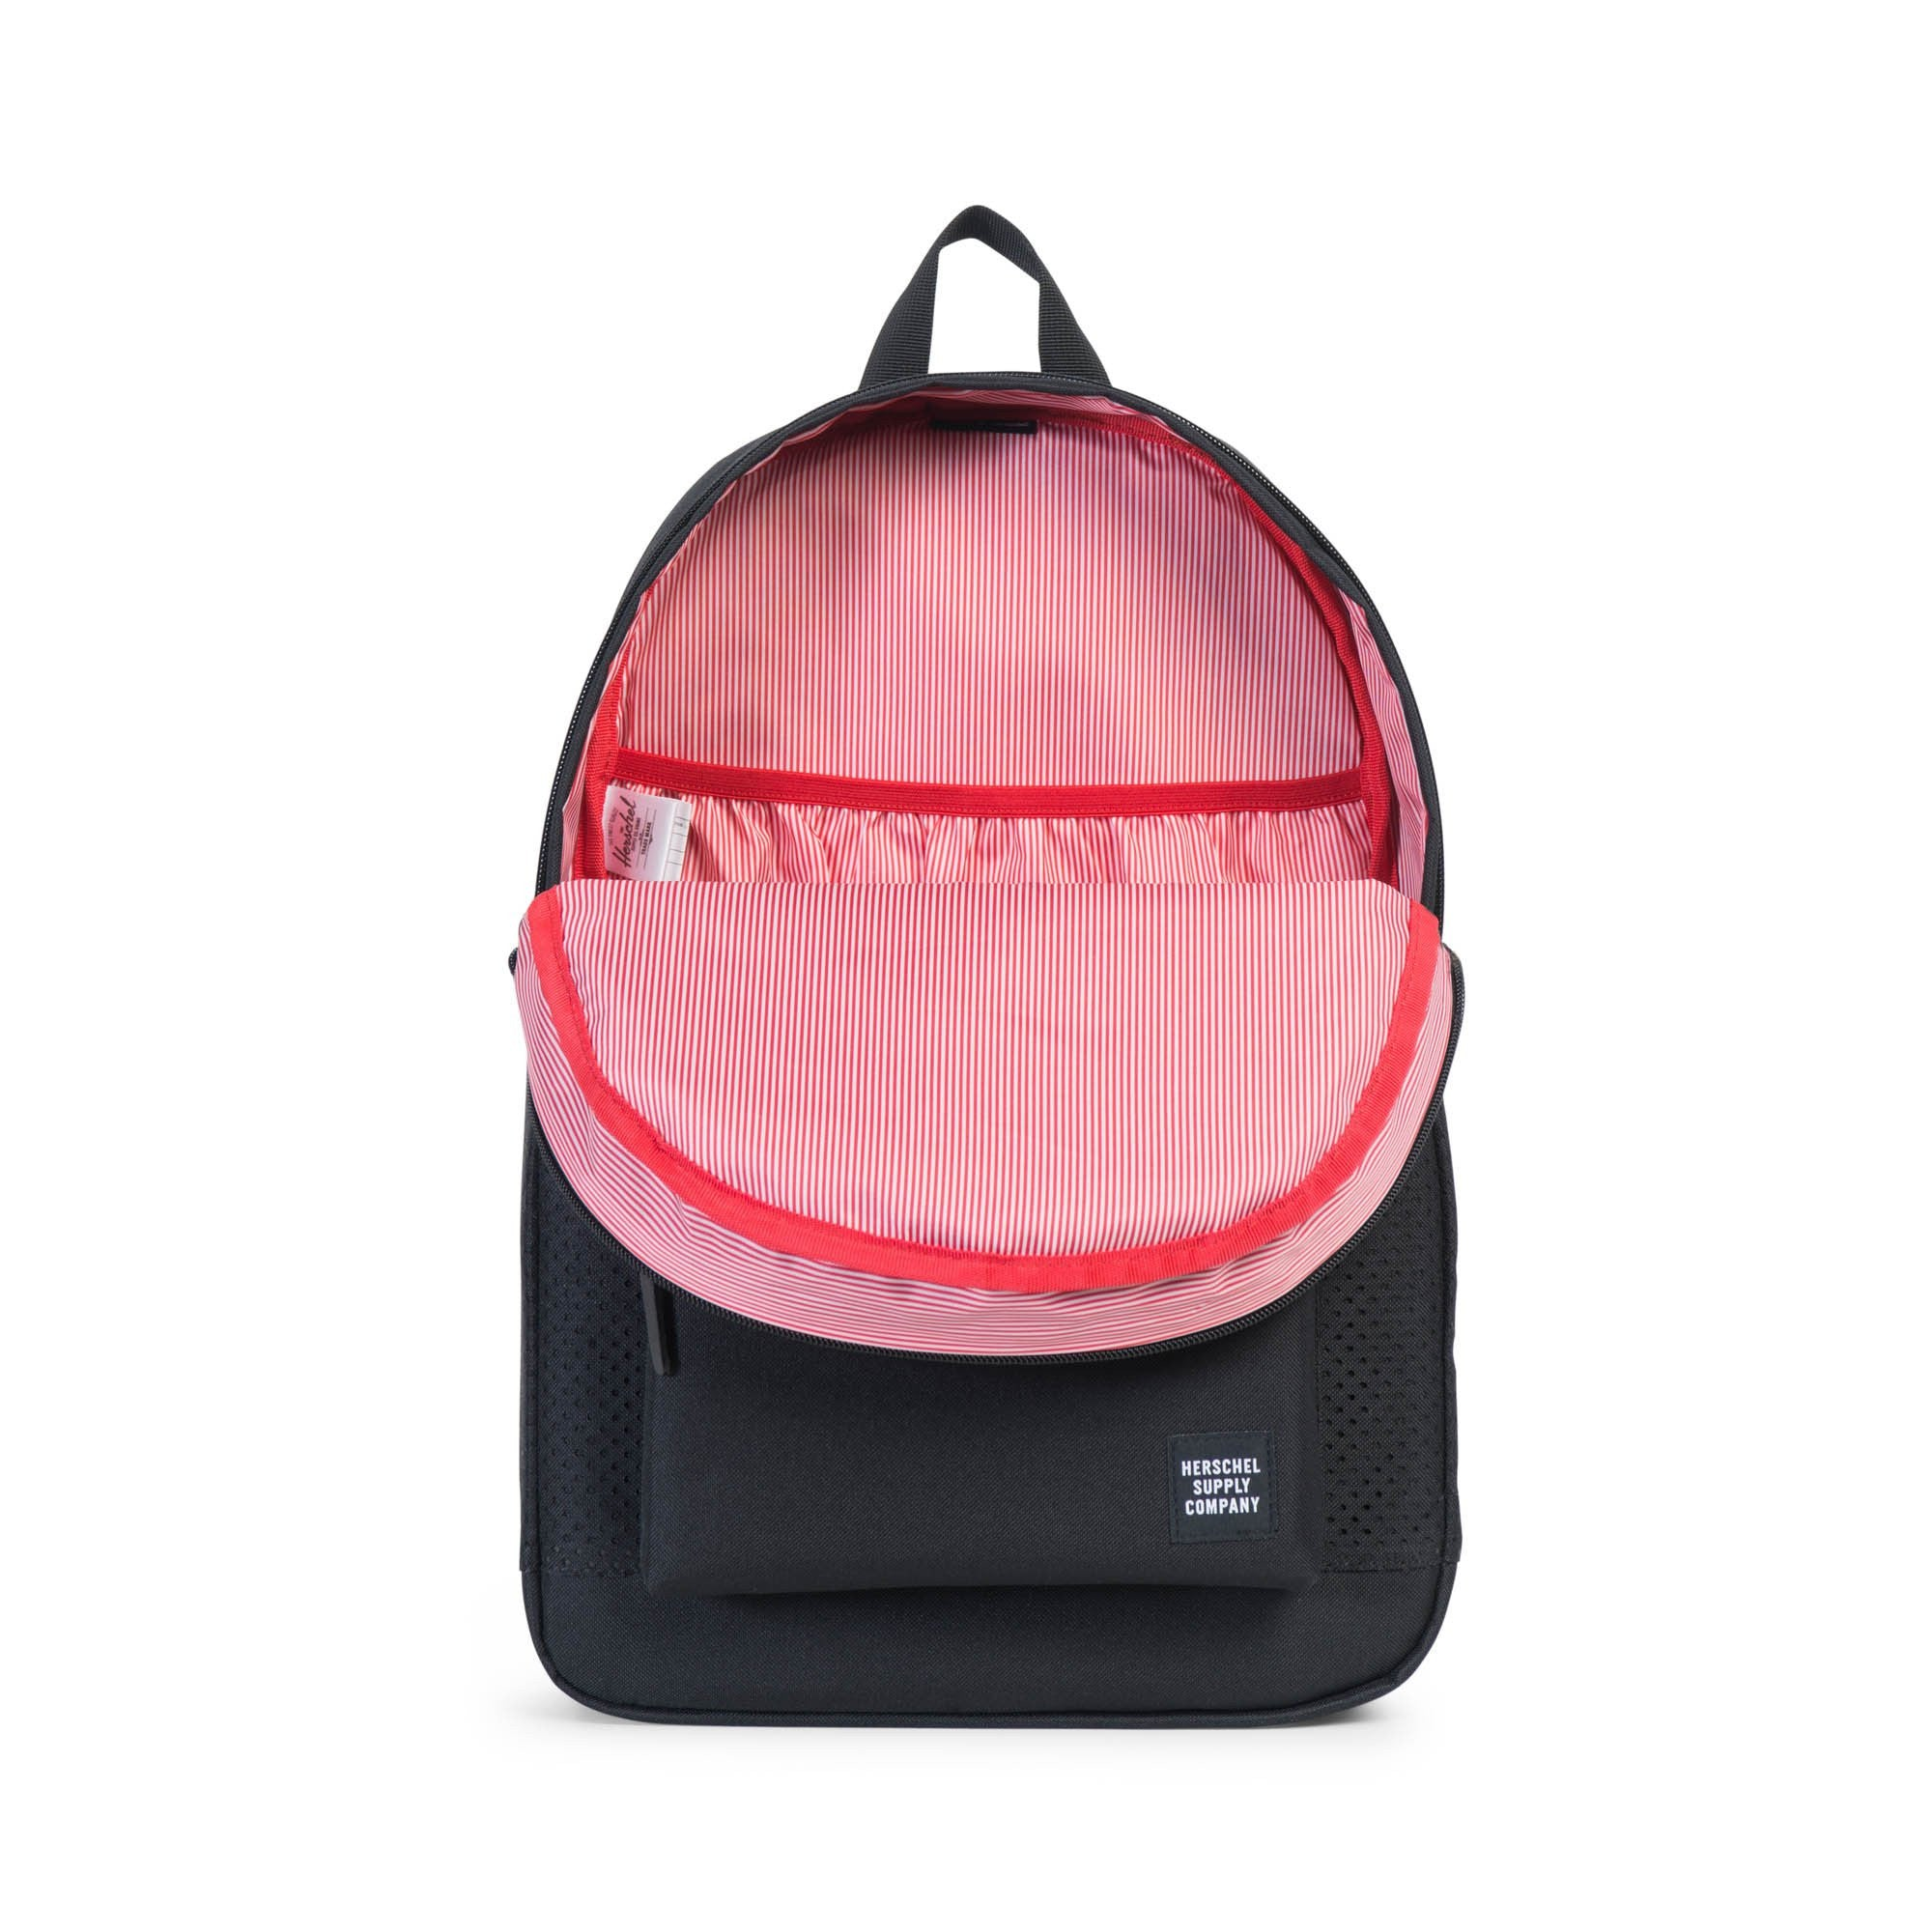 Herschel Supply Co. - Settlement Backpack, Perforated Black/Black - The Giant Peach - 2